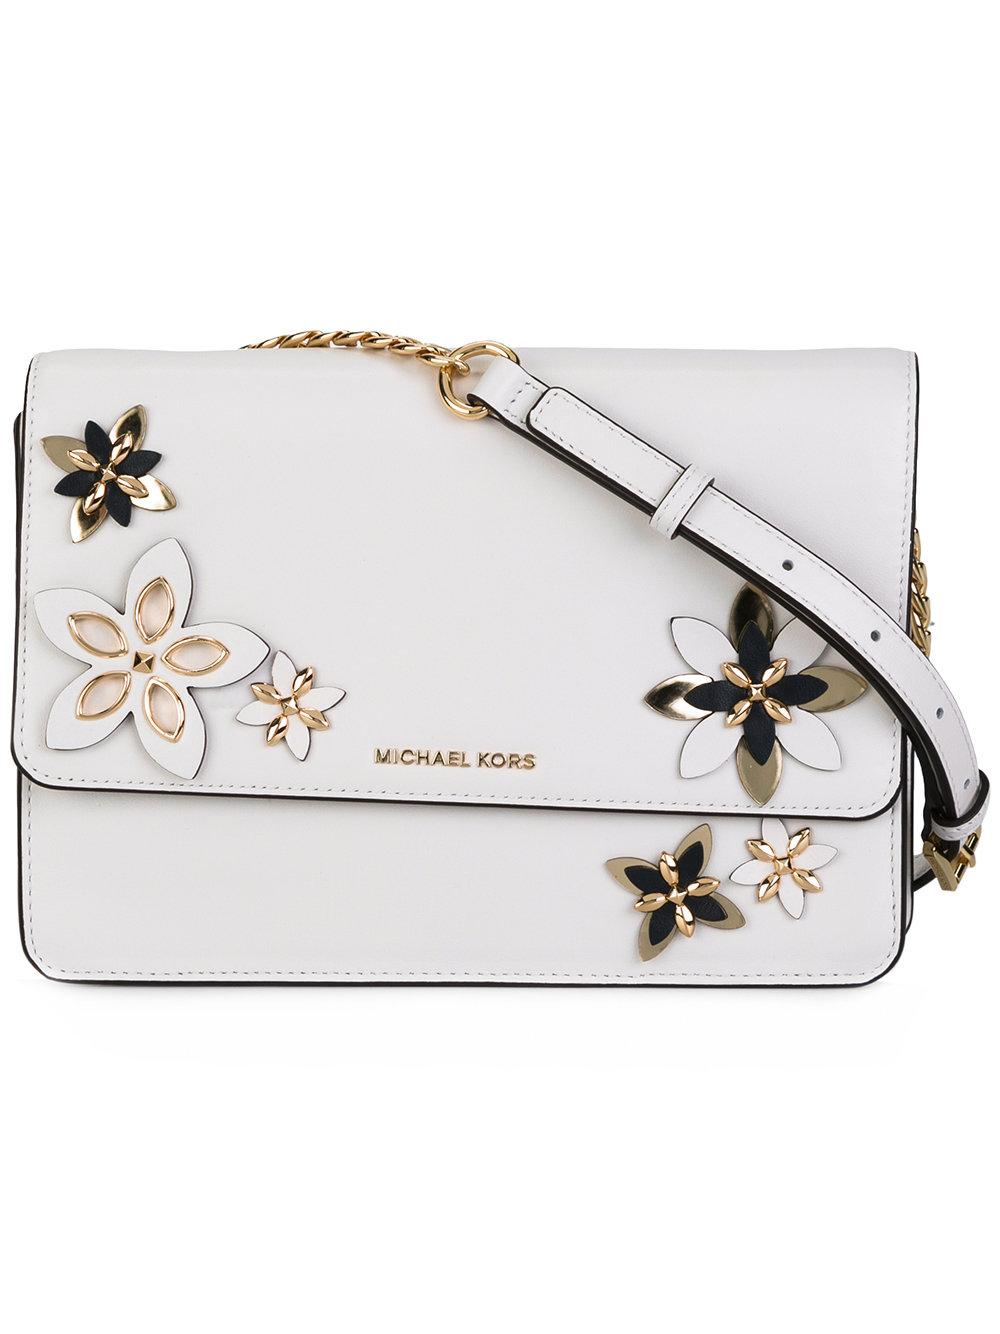 Michael Michael Kors Flowers Detail Cross Body Bag In White | Lyst